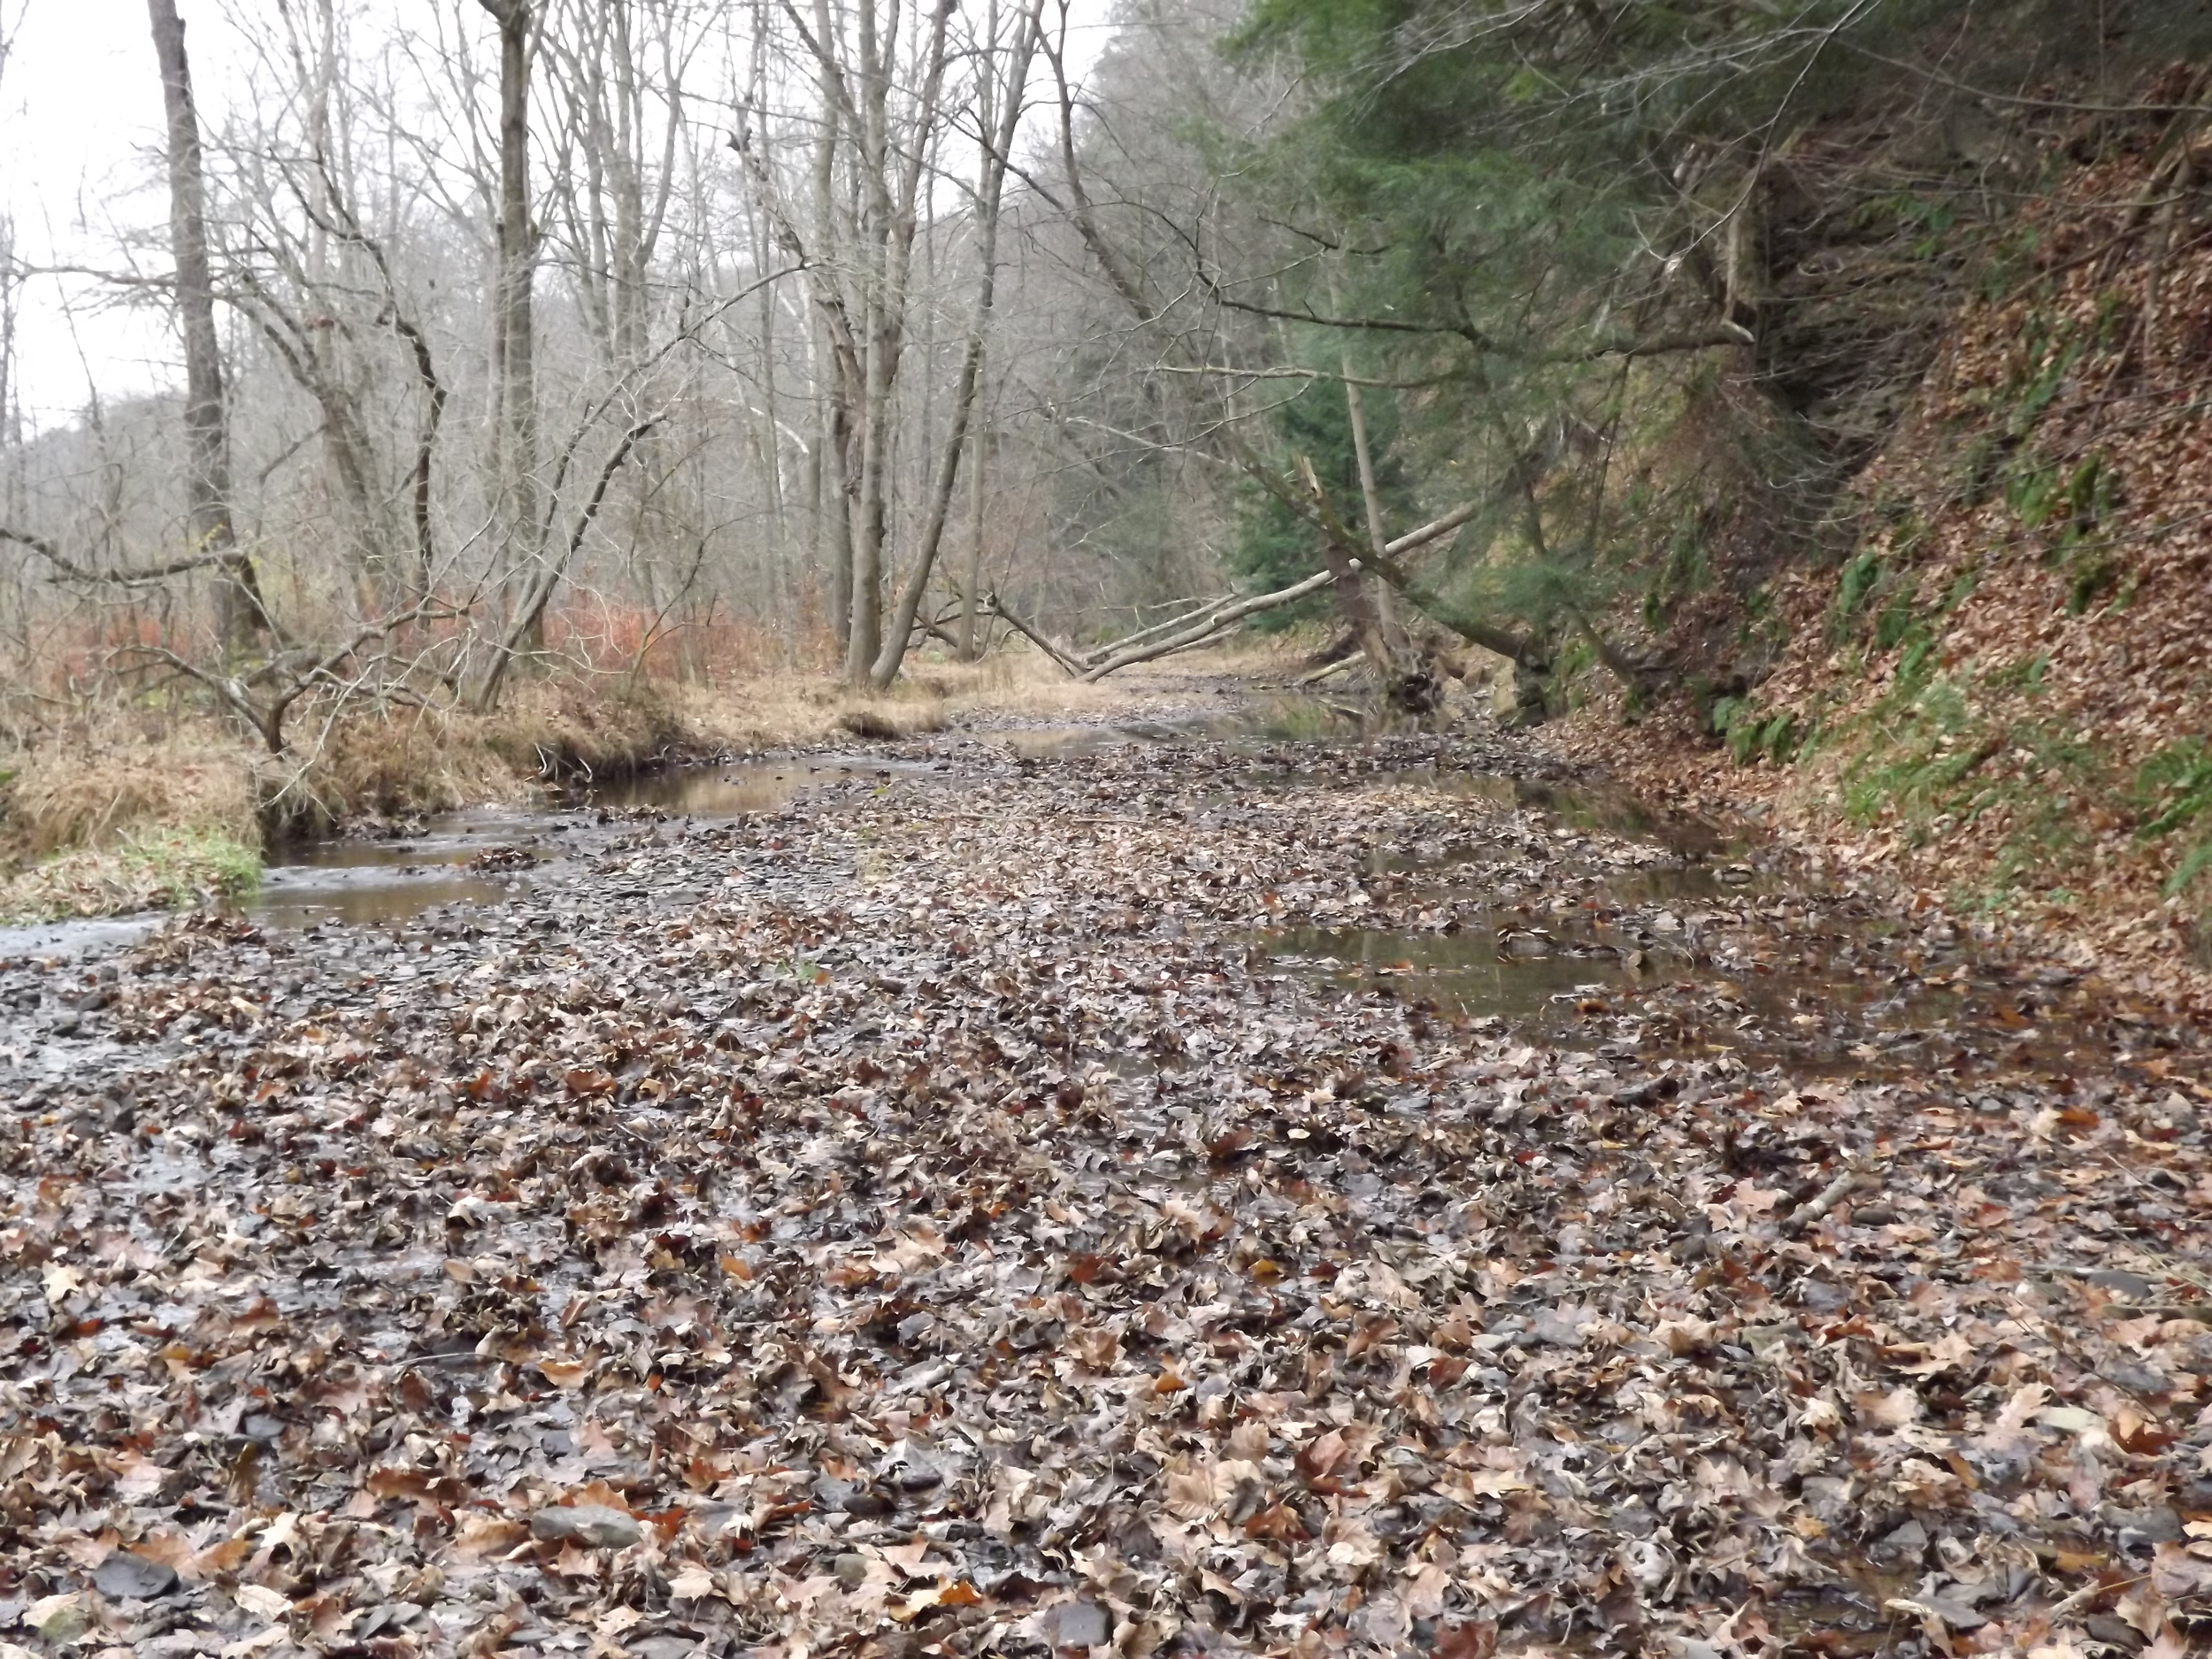 Creek with Leaves - Sections of Little Sewickley Creek, like in this picture, are absolutely choked with leaves right now, but after a few good rains or snow melts they'll be flushed into the Ohio and down river.